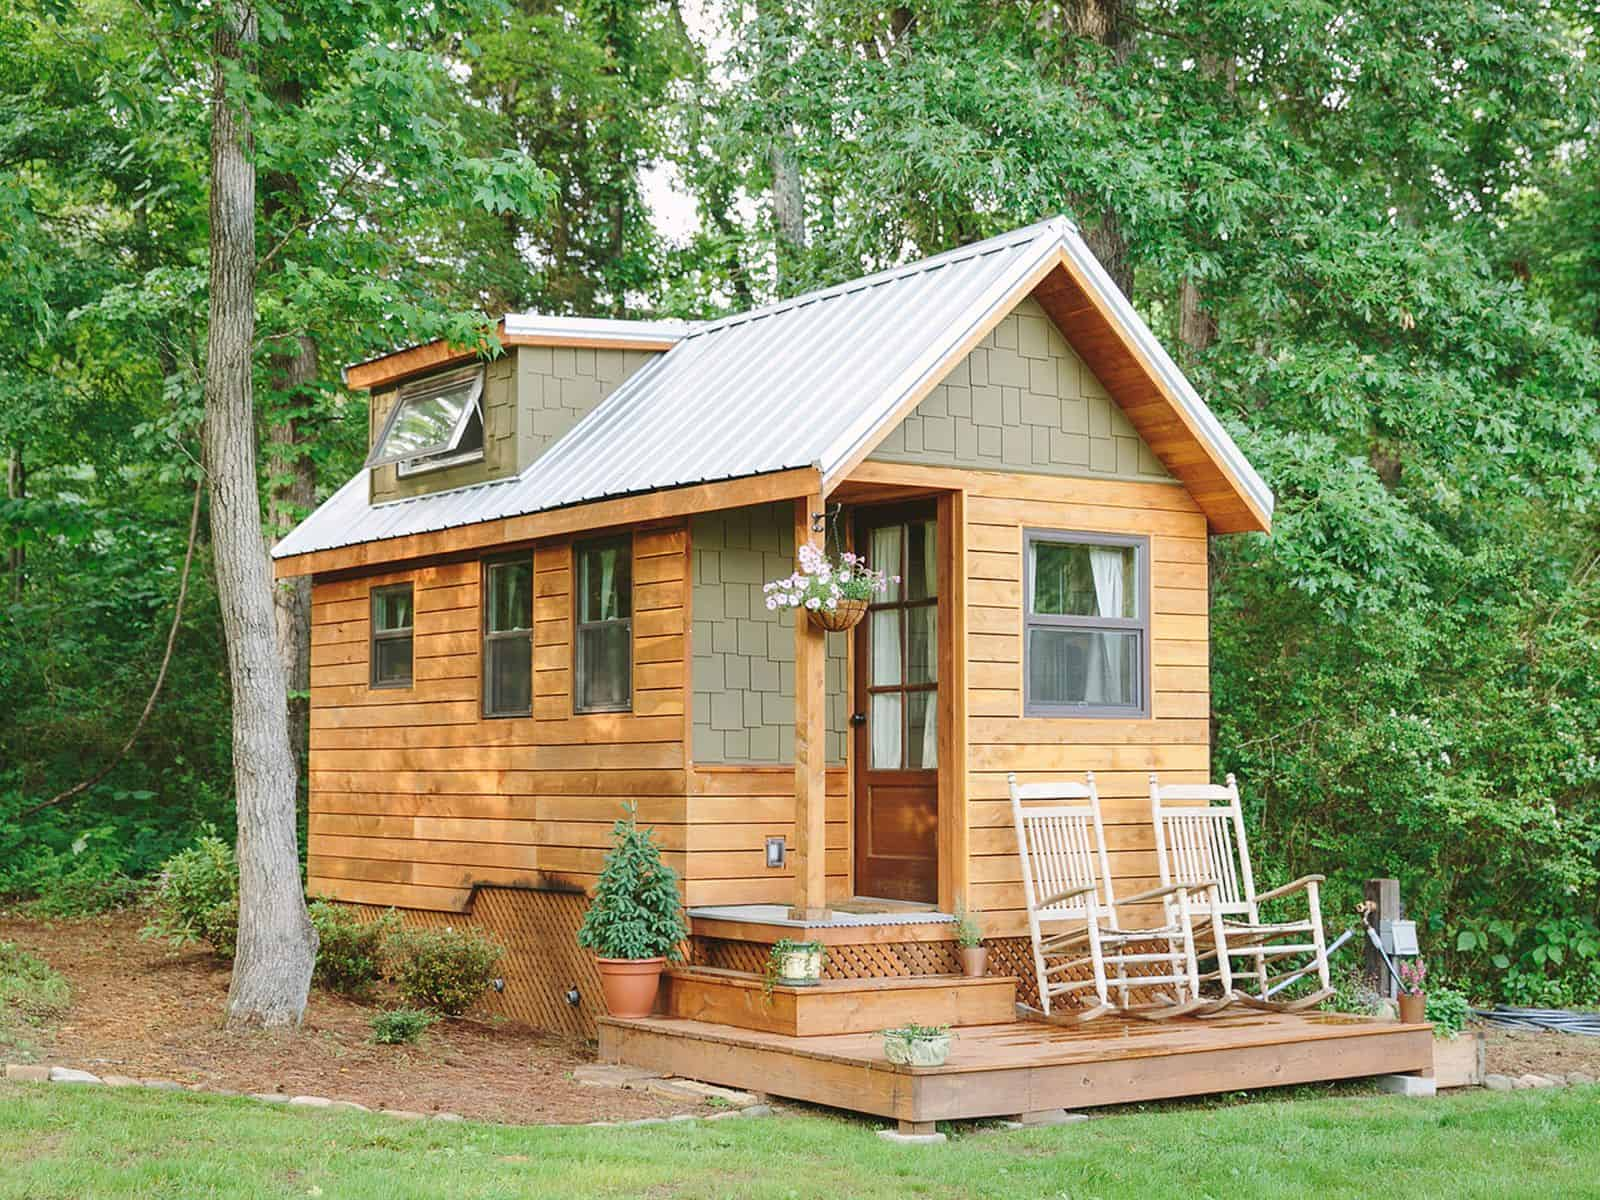 Extremely tiny homes minimalistic living in style for Tiny house design